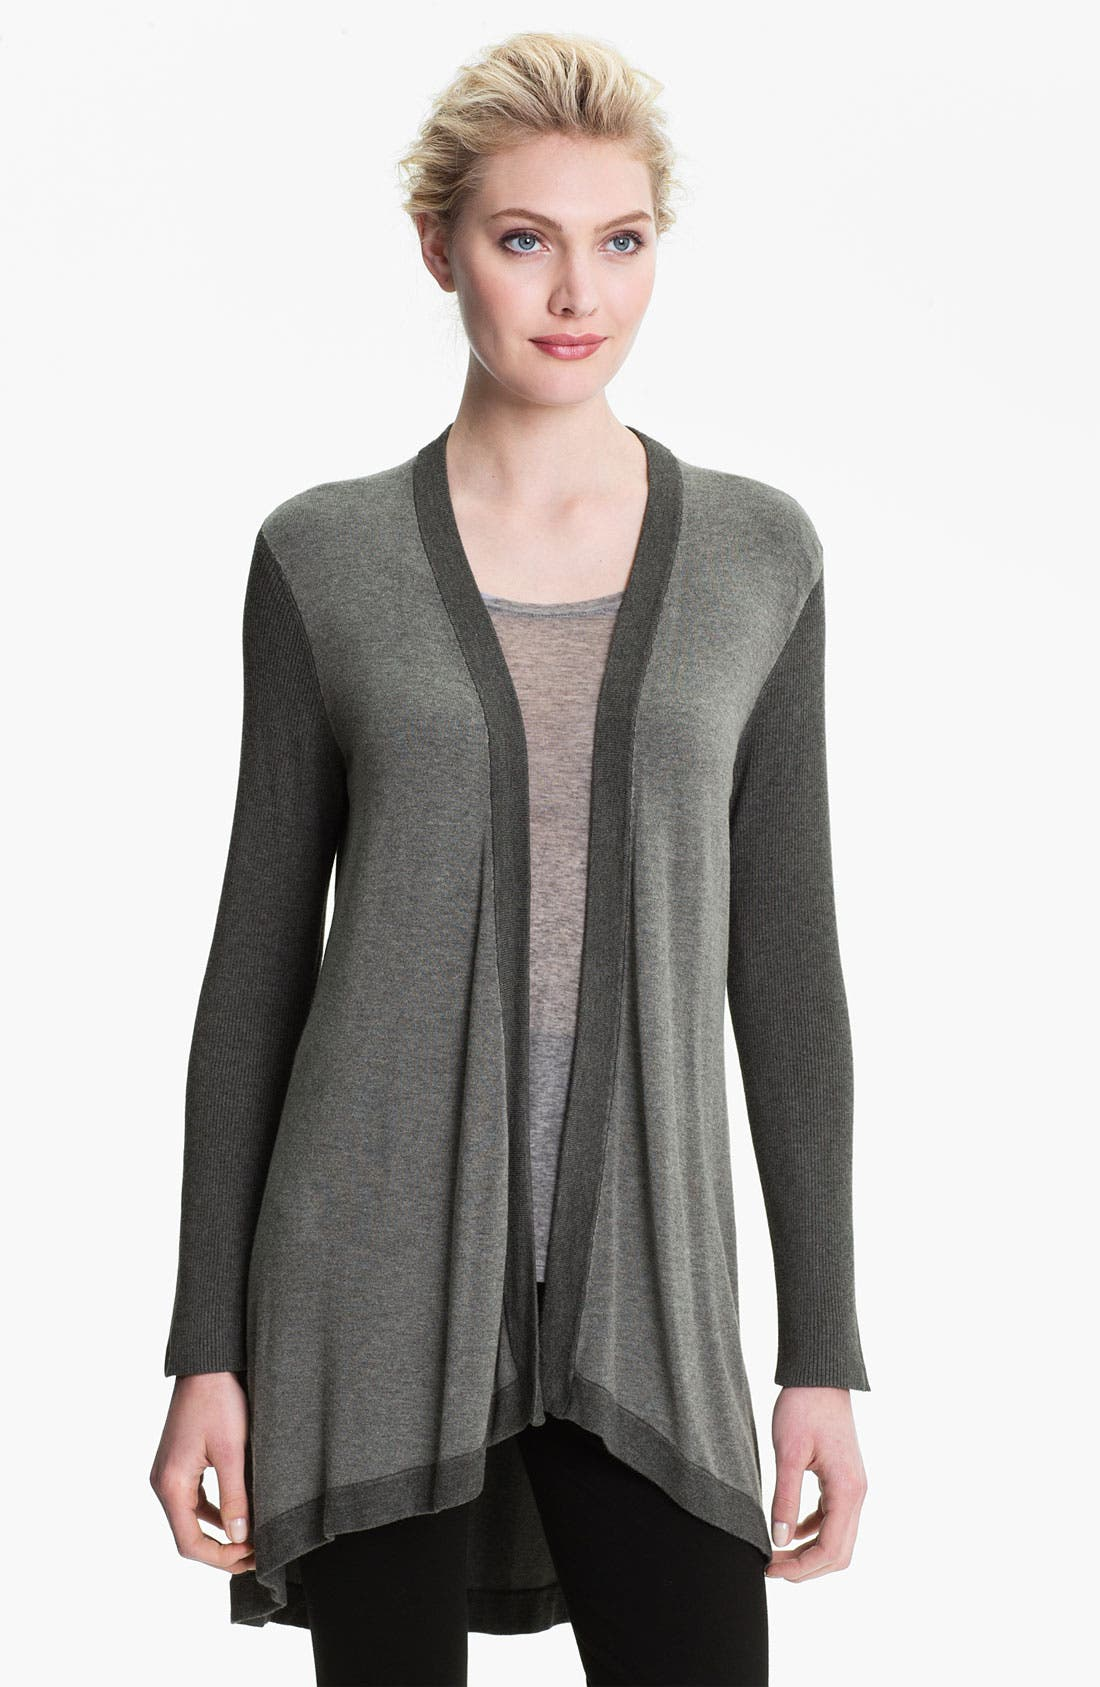 Alternate Image 1 Selected - Eileen Fisher Angled Front Cardigan (Online Exclusive)